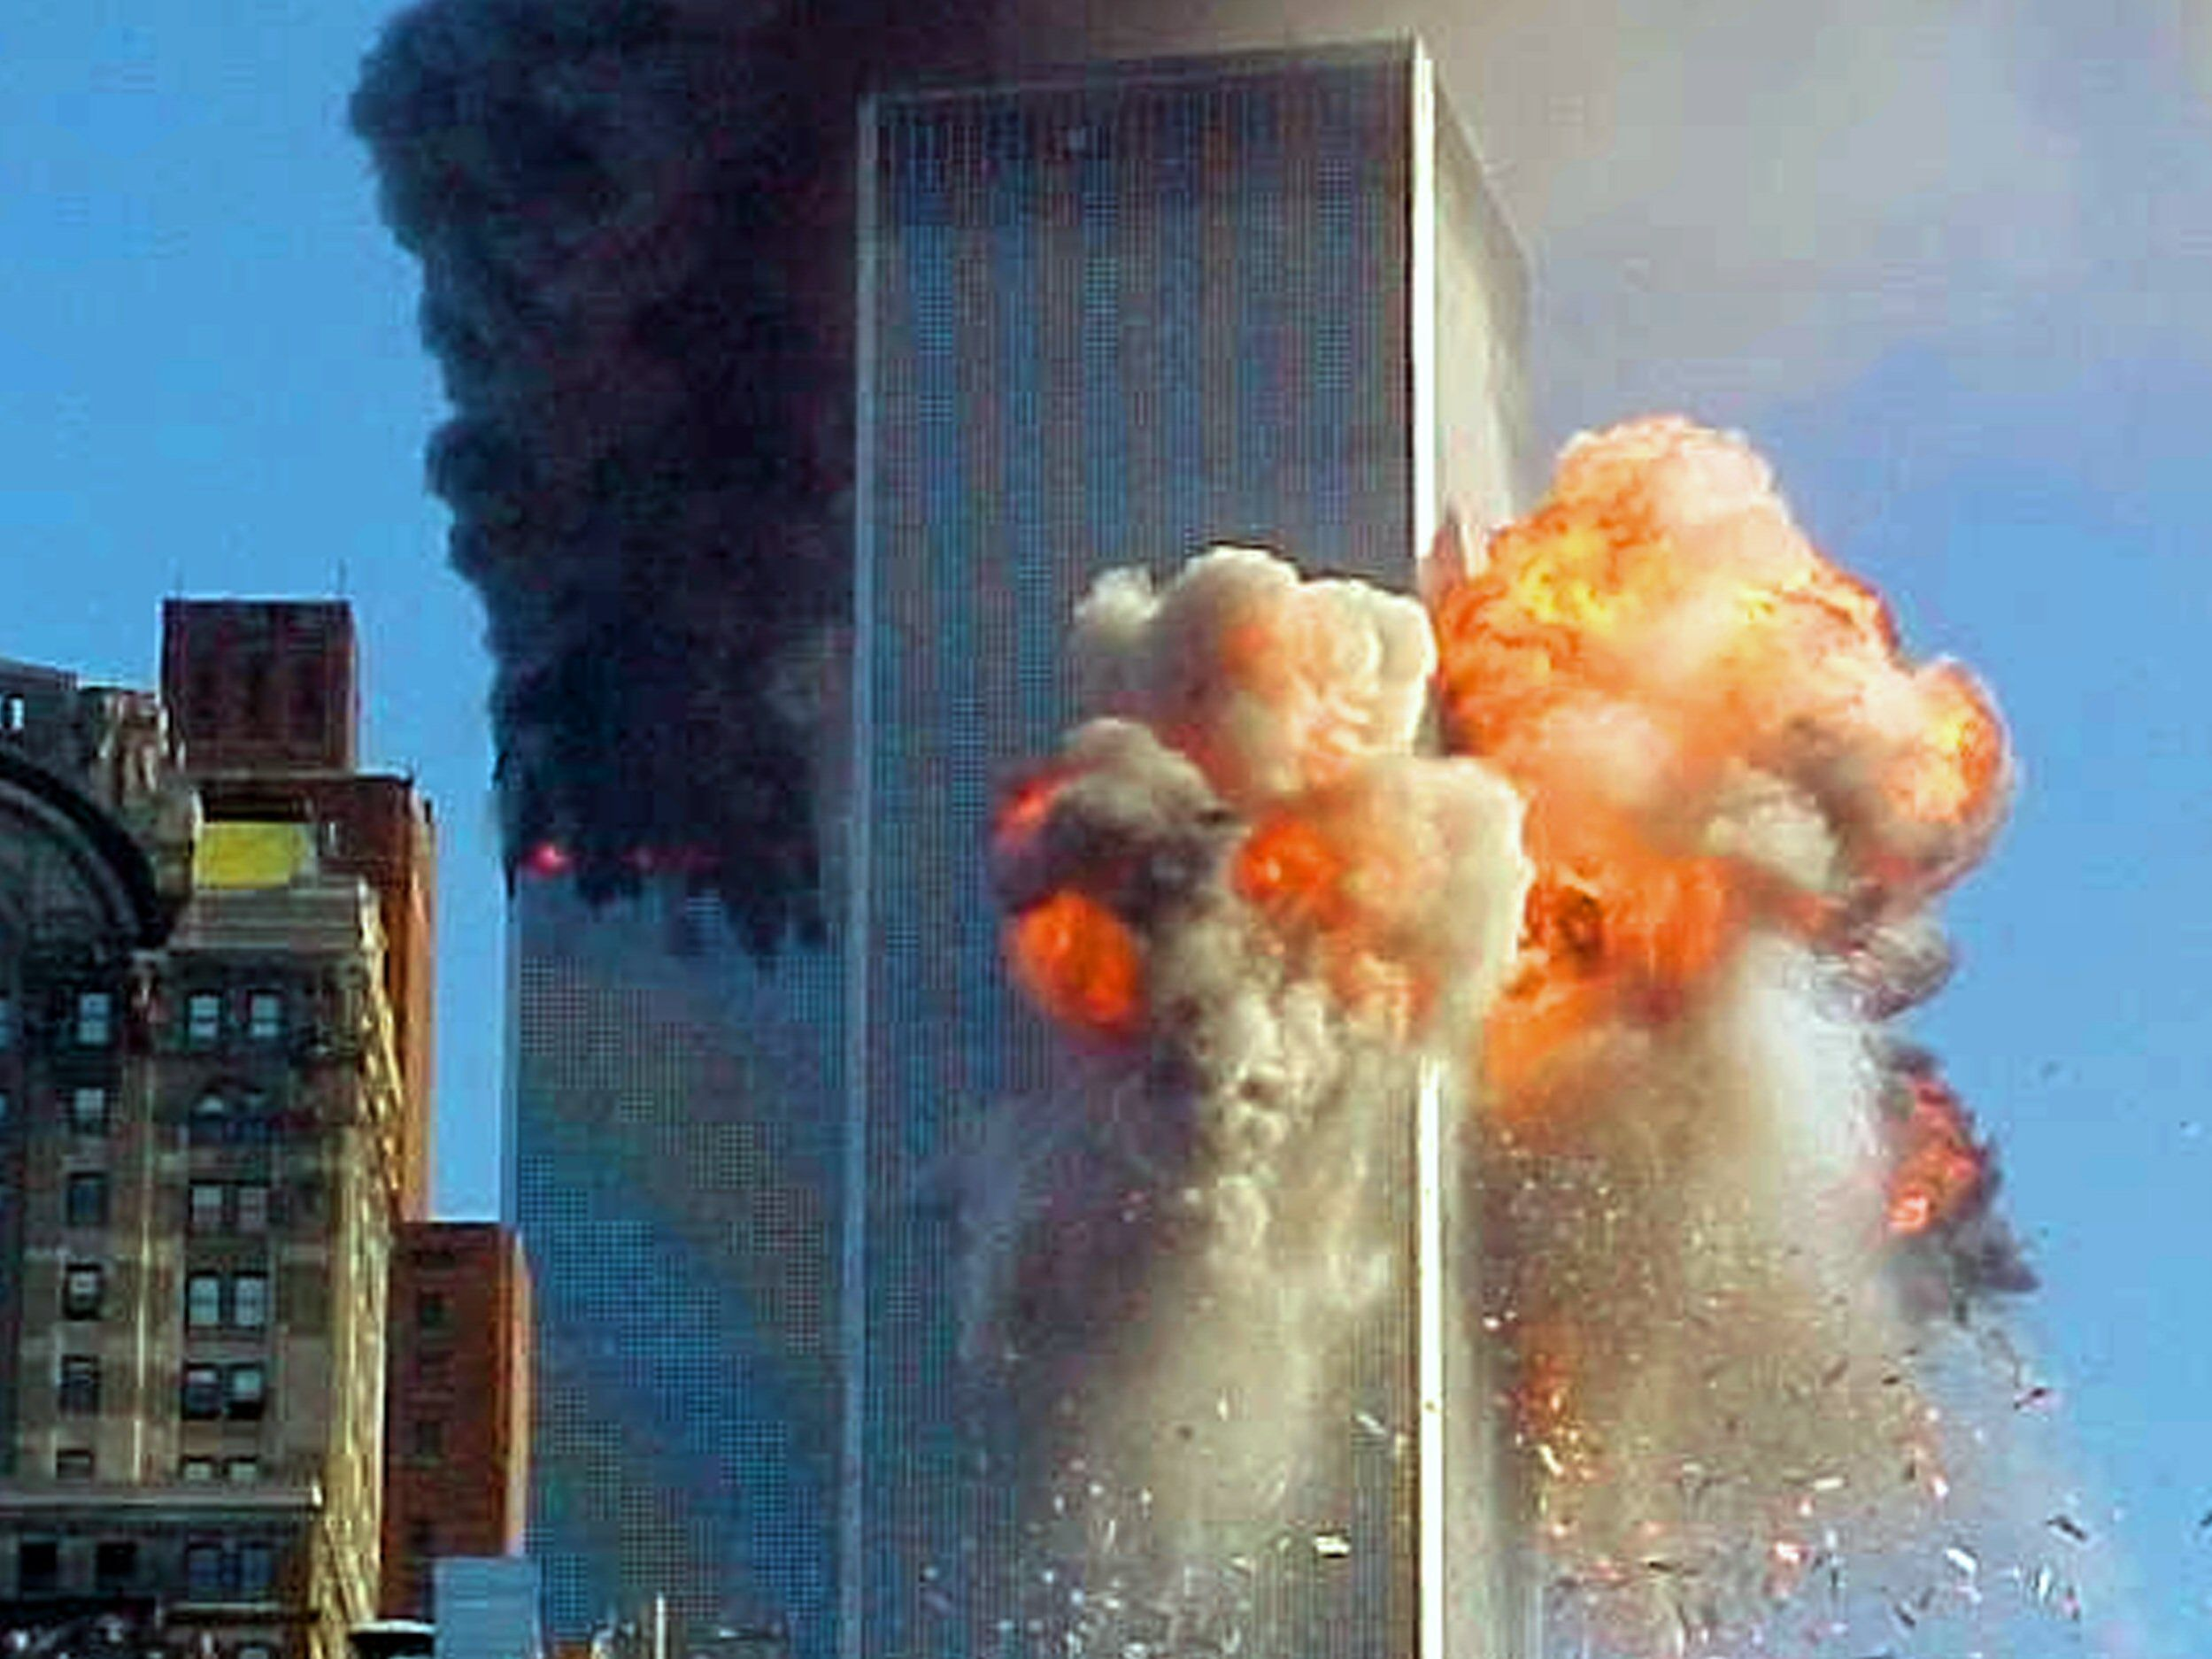 9/11 Photos: Attack on the World Trade